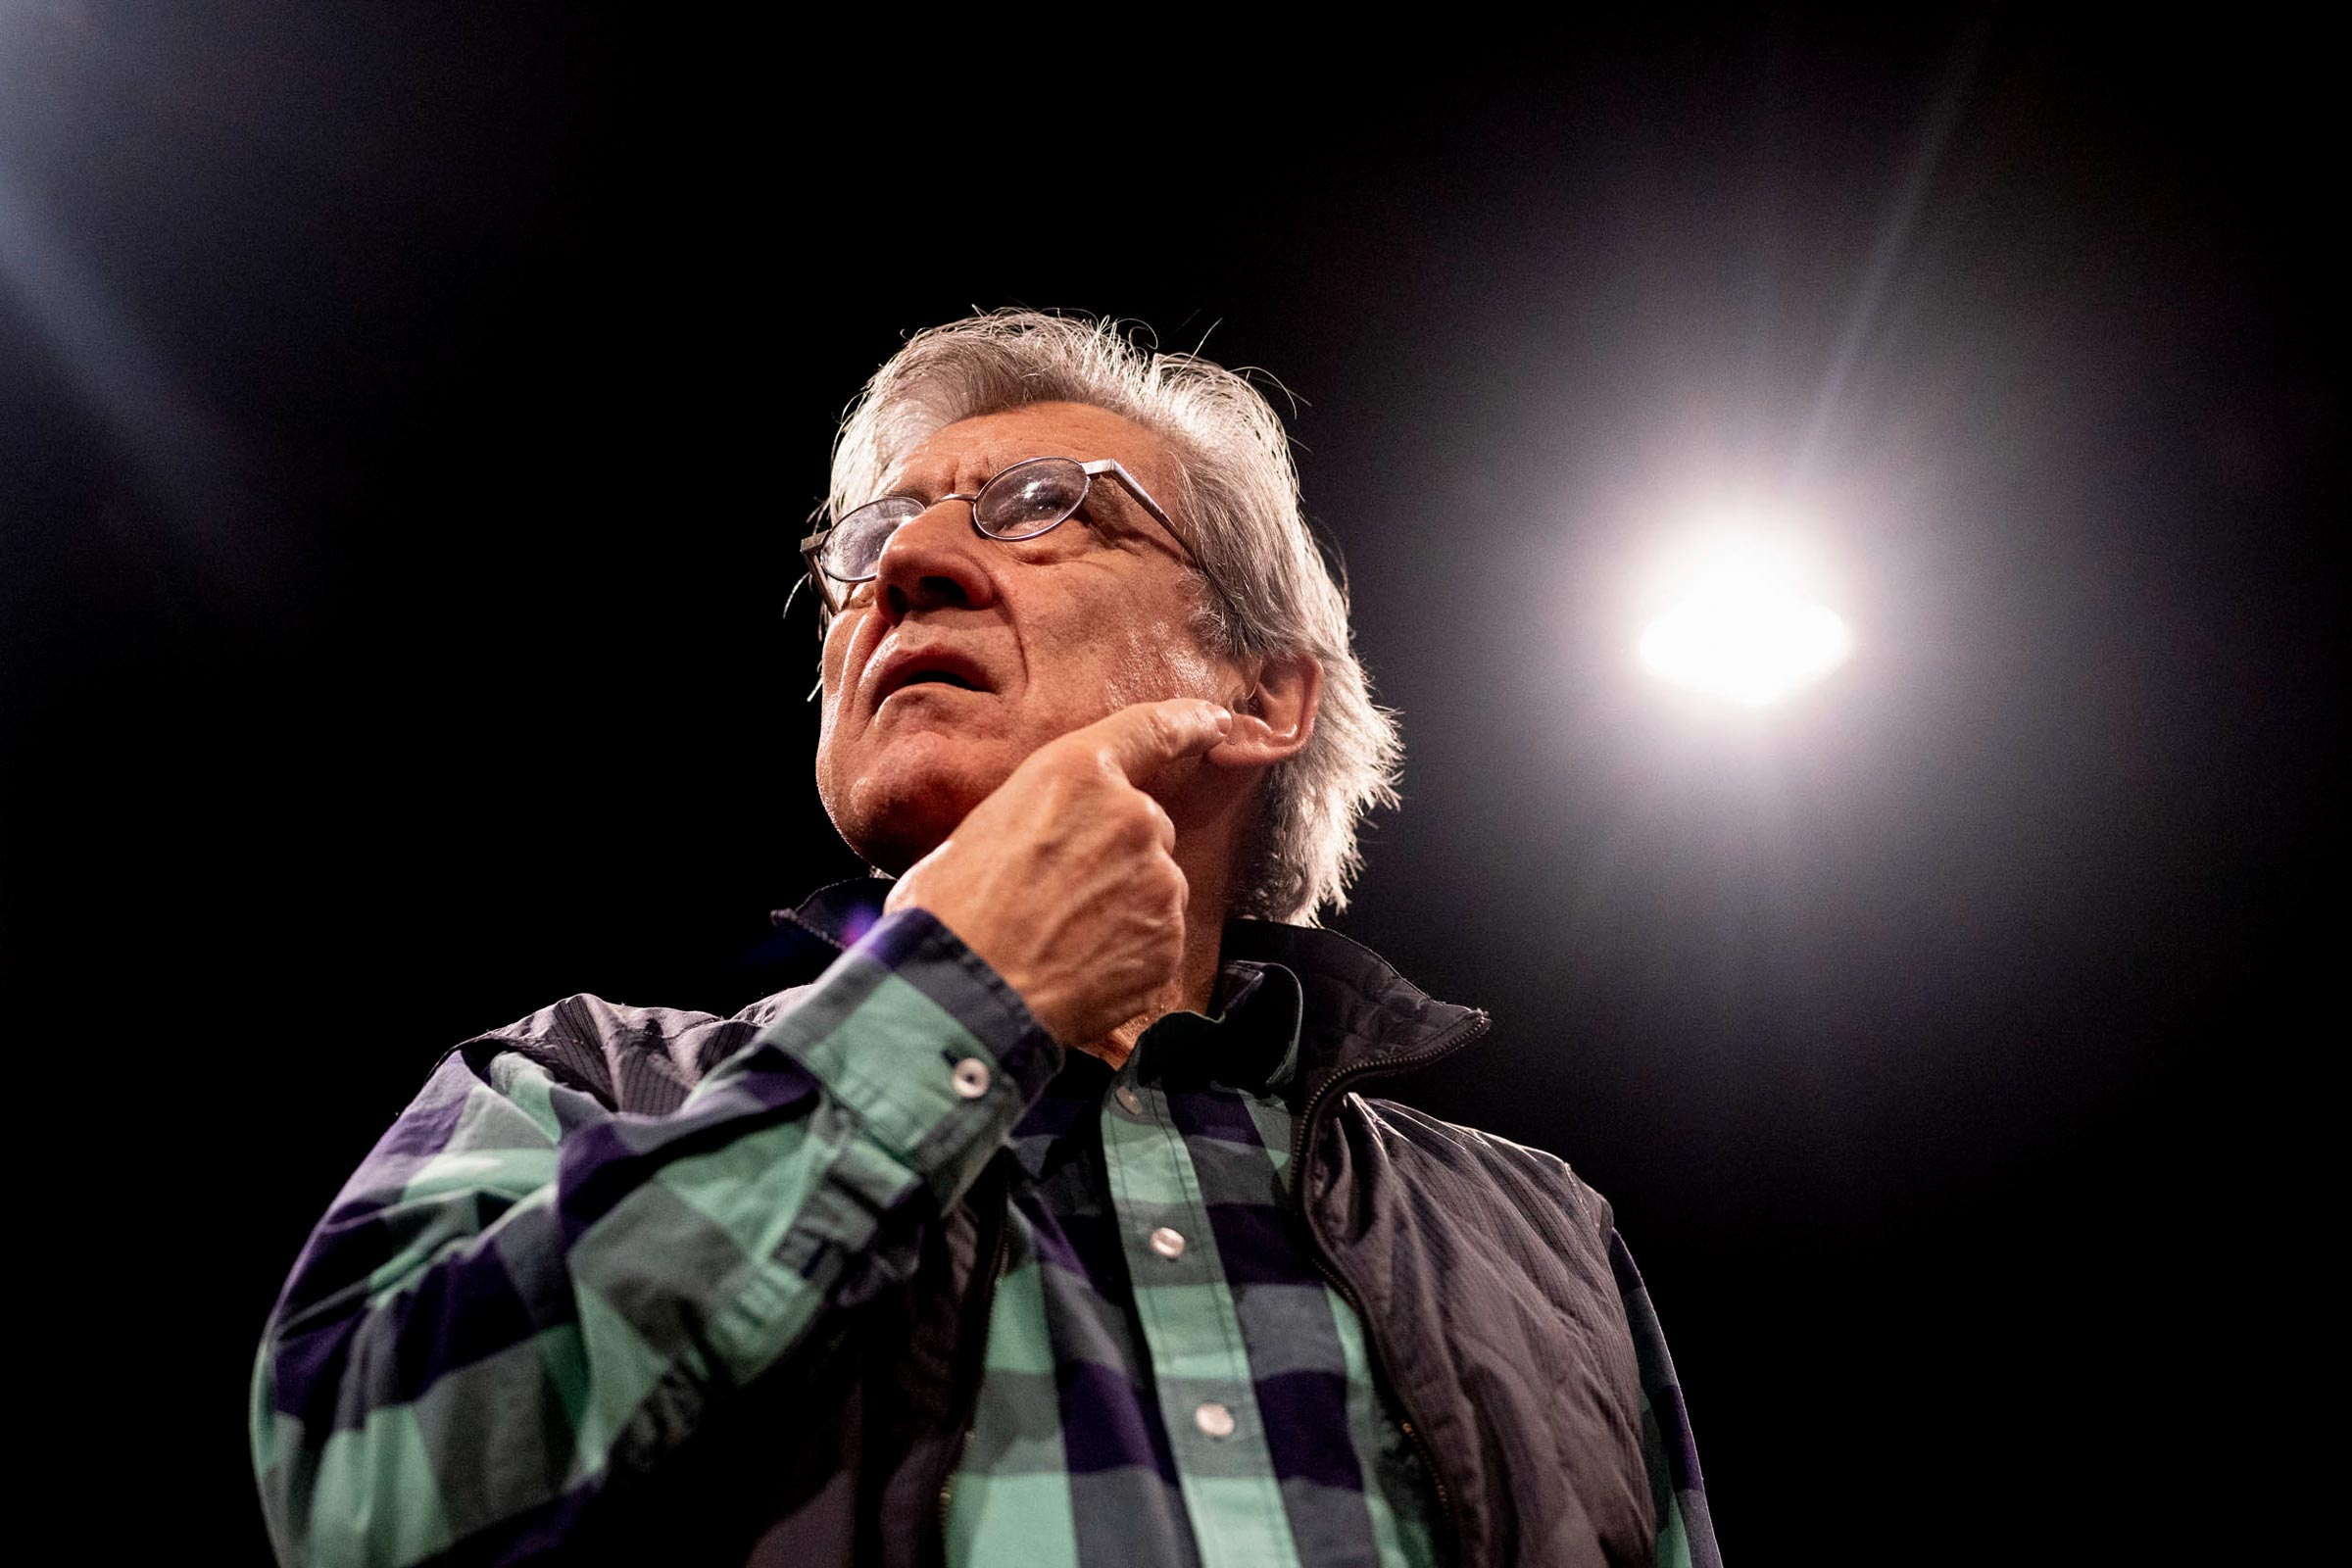 Over the past 40 years, Fernando Operé has directed 52 plays with the Spanish Theater Group.